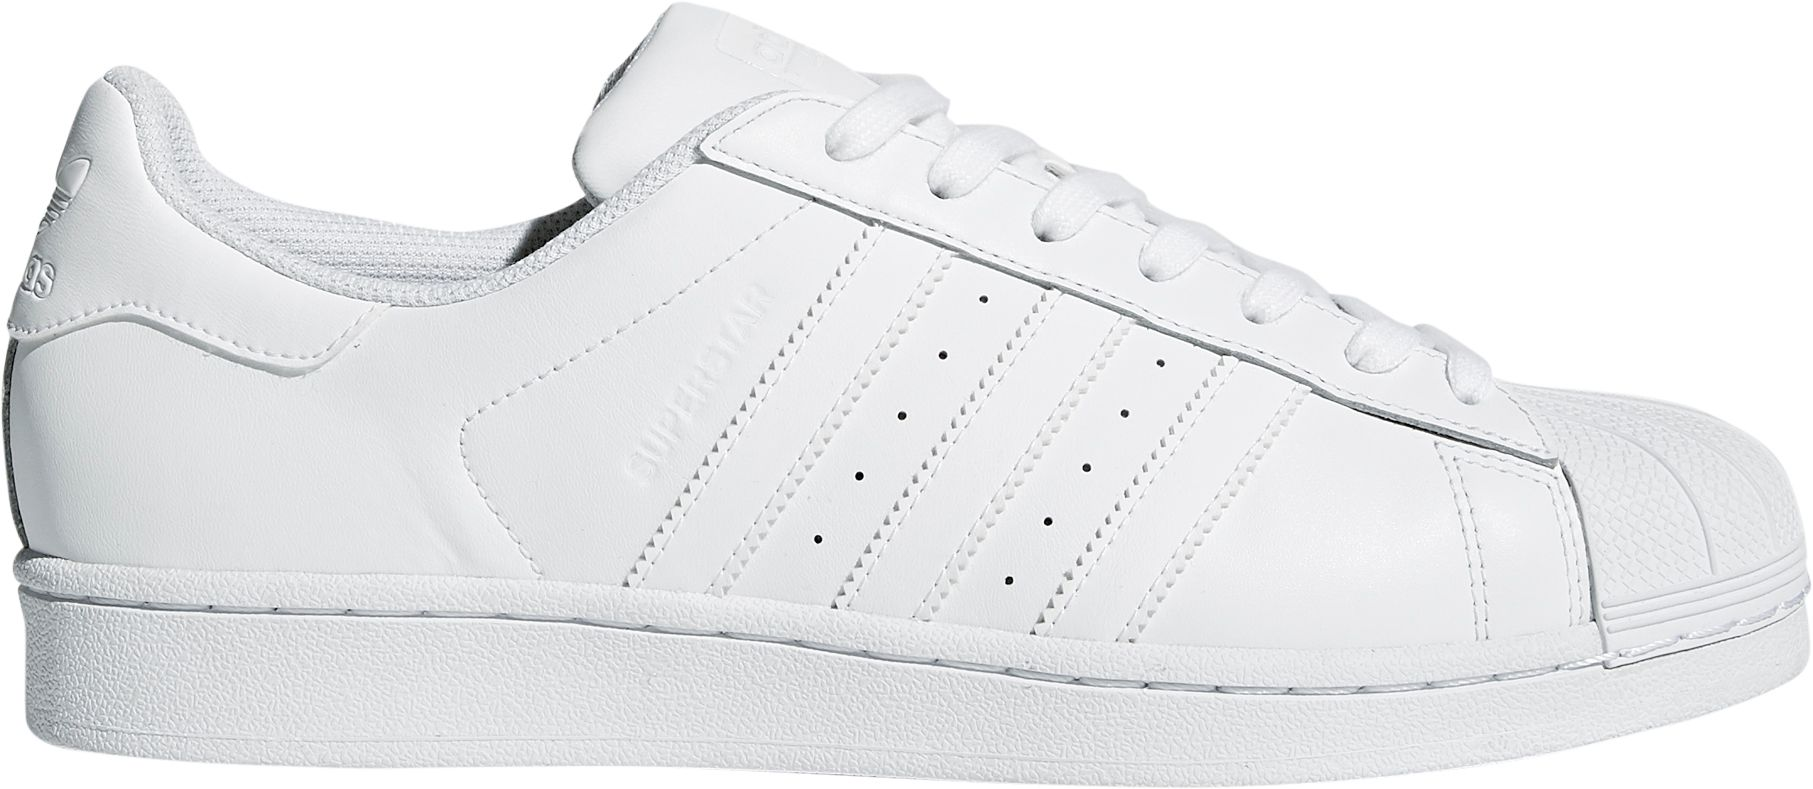 Cheap Adidas Superstar 1 White Black Unisex Sports Office